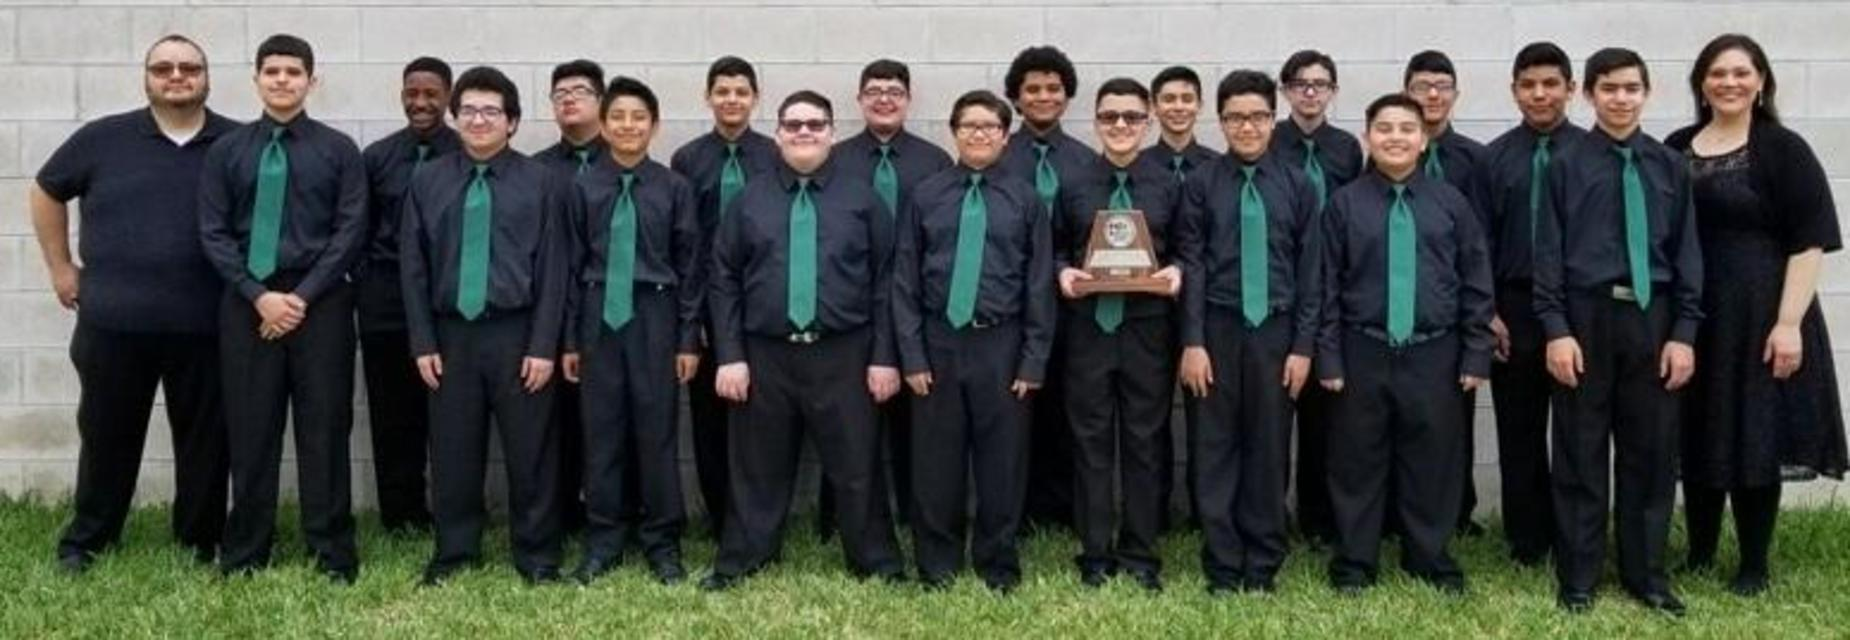 Boys Choir - Take SWEEPSTAKES!!